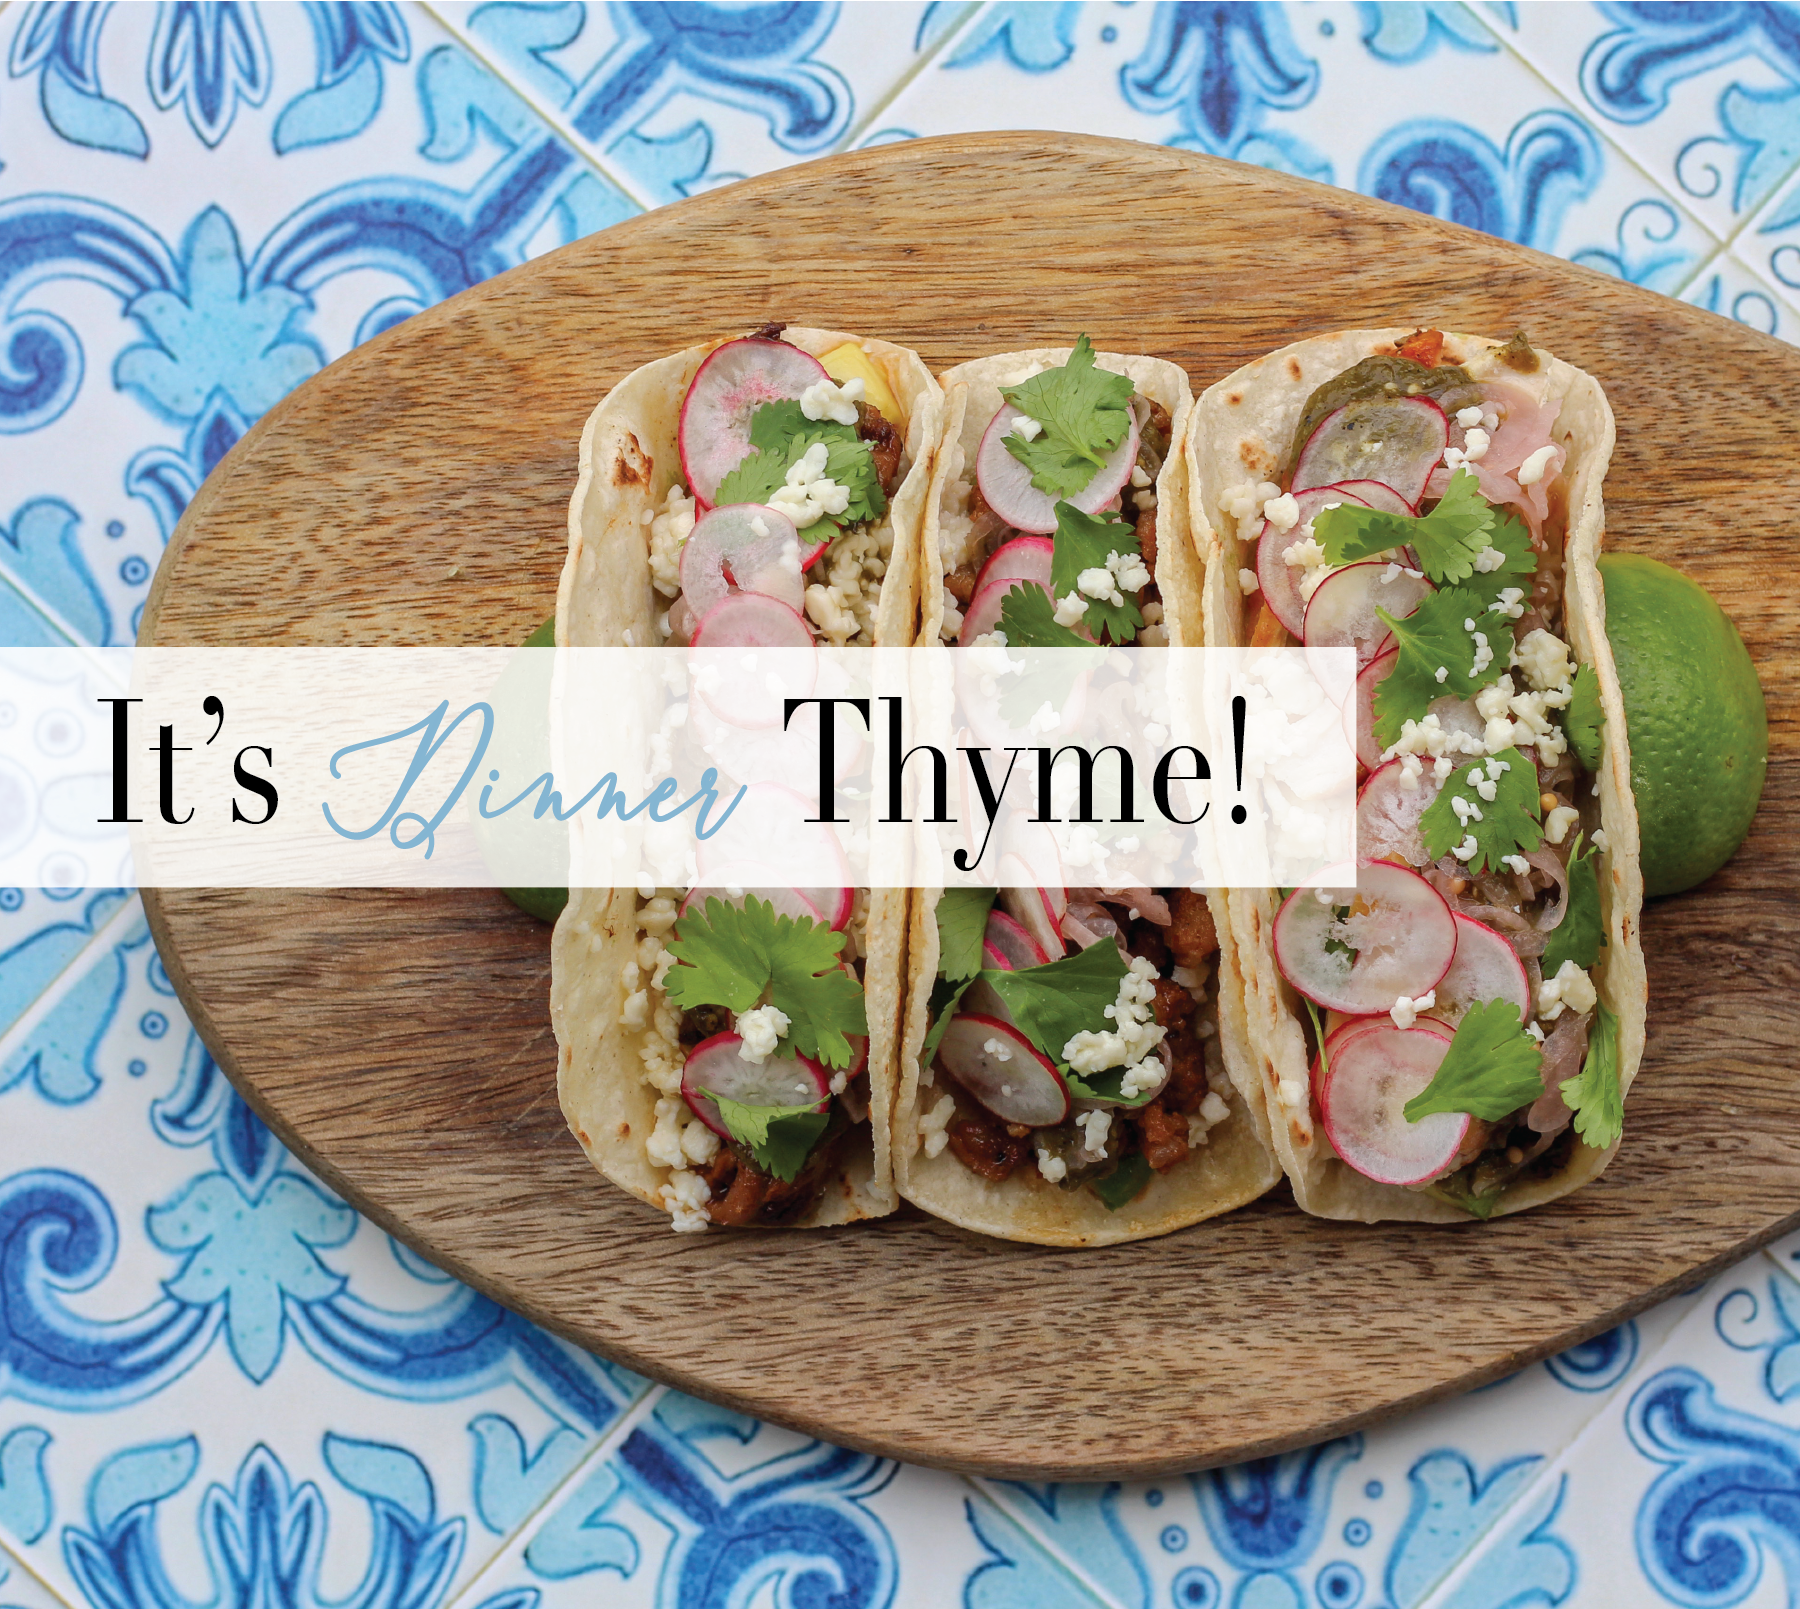 Pop-up Dinner: Taco Night! - Sept. 27th from 6:00pm - 9:00pm we will be serving a variety of tacos with some delicious sides 🌮 And don't forget about churros and Mexican hot chocolate for dessert!